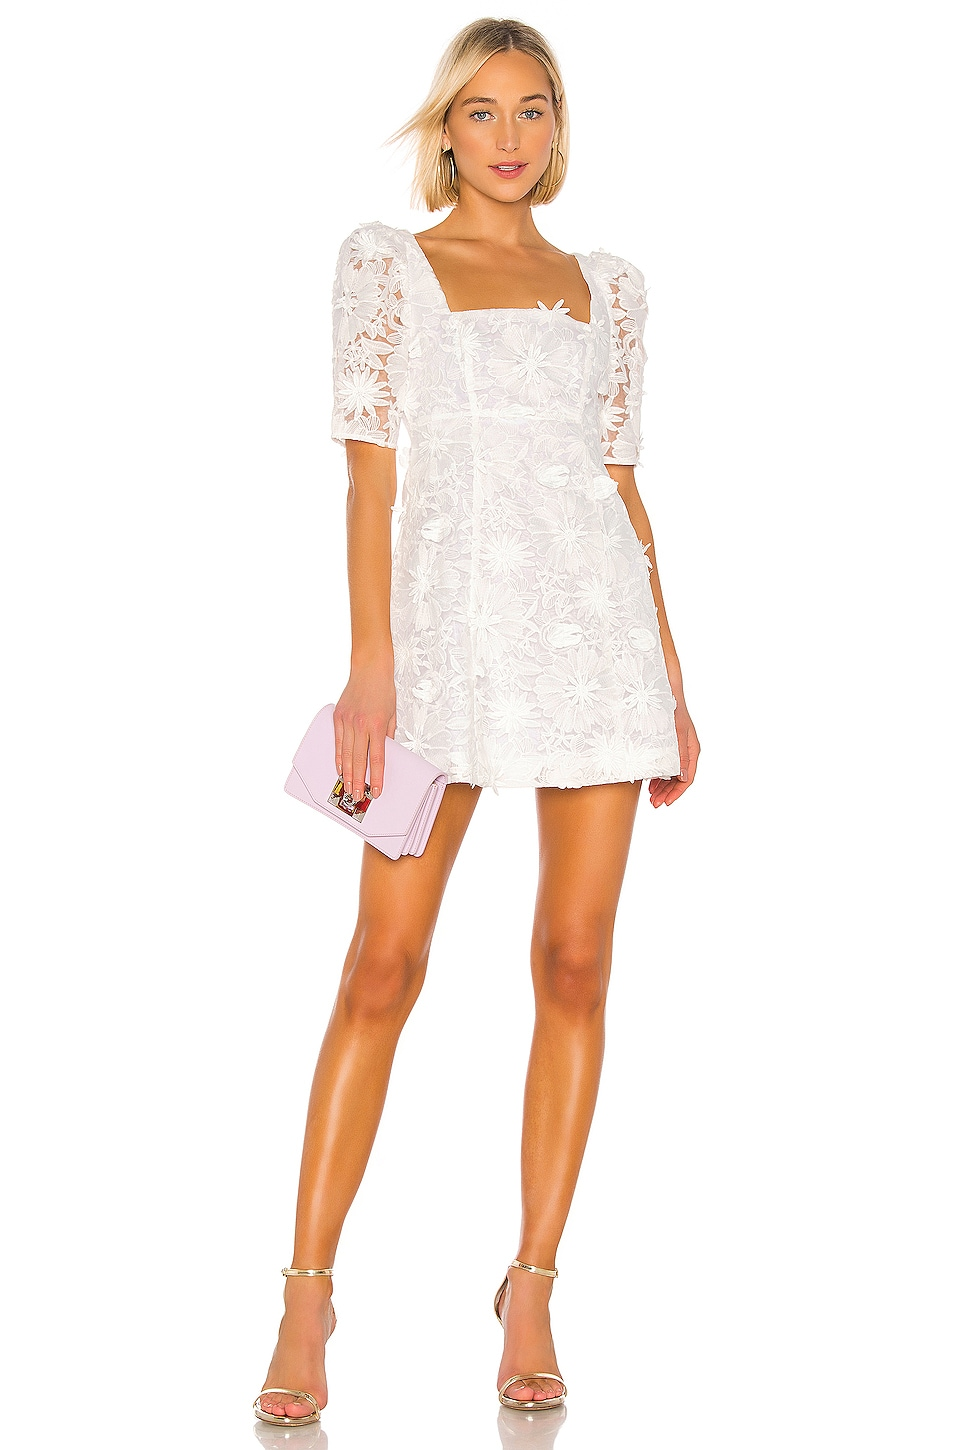 LPA Tersa Dress in White